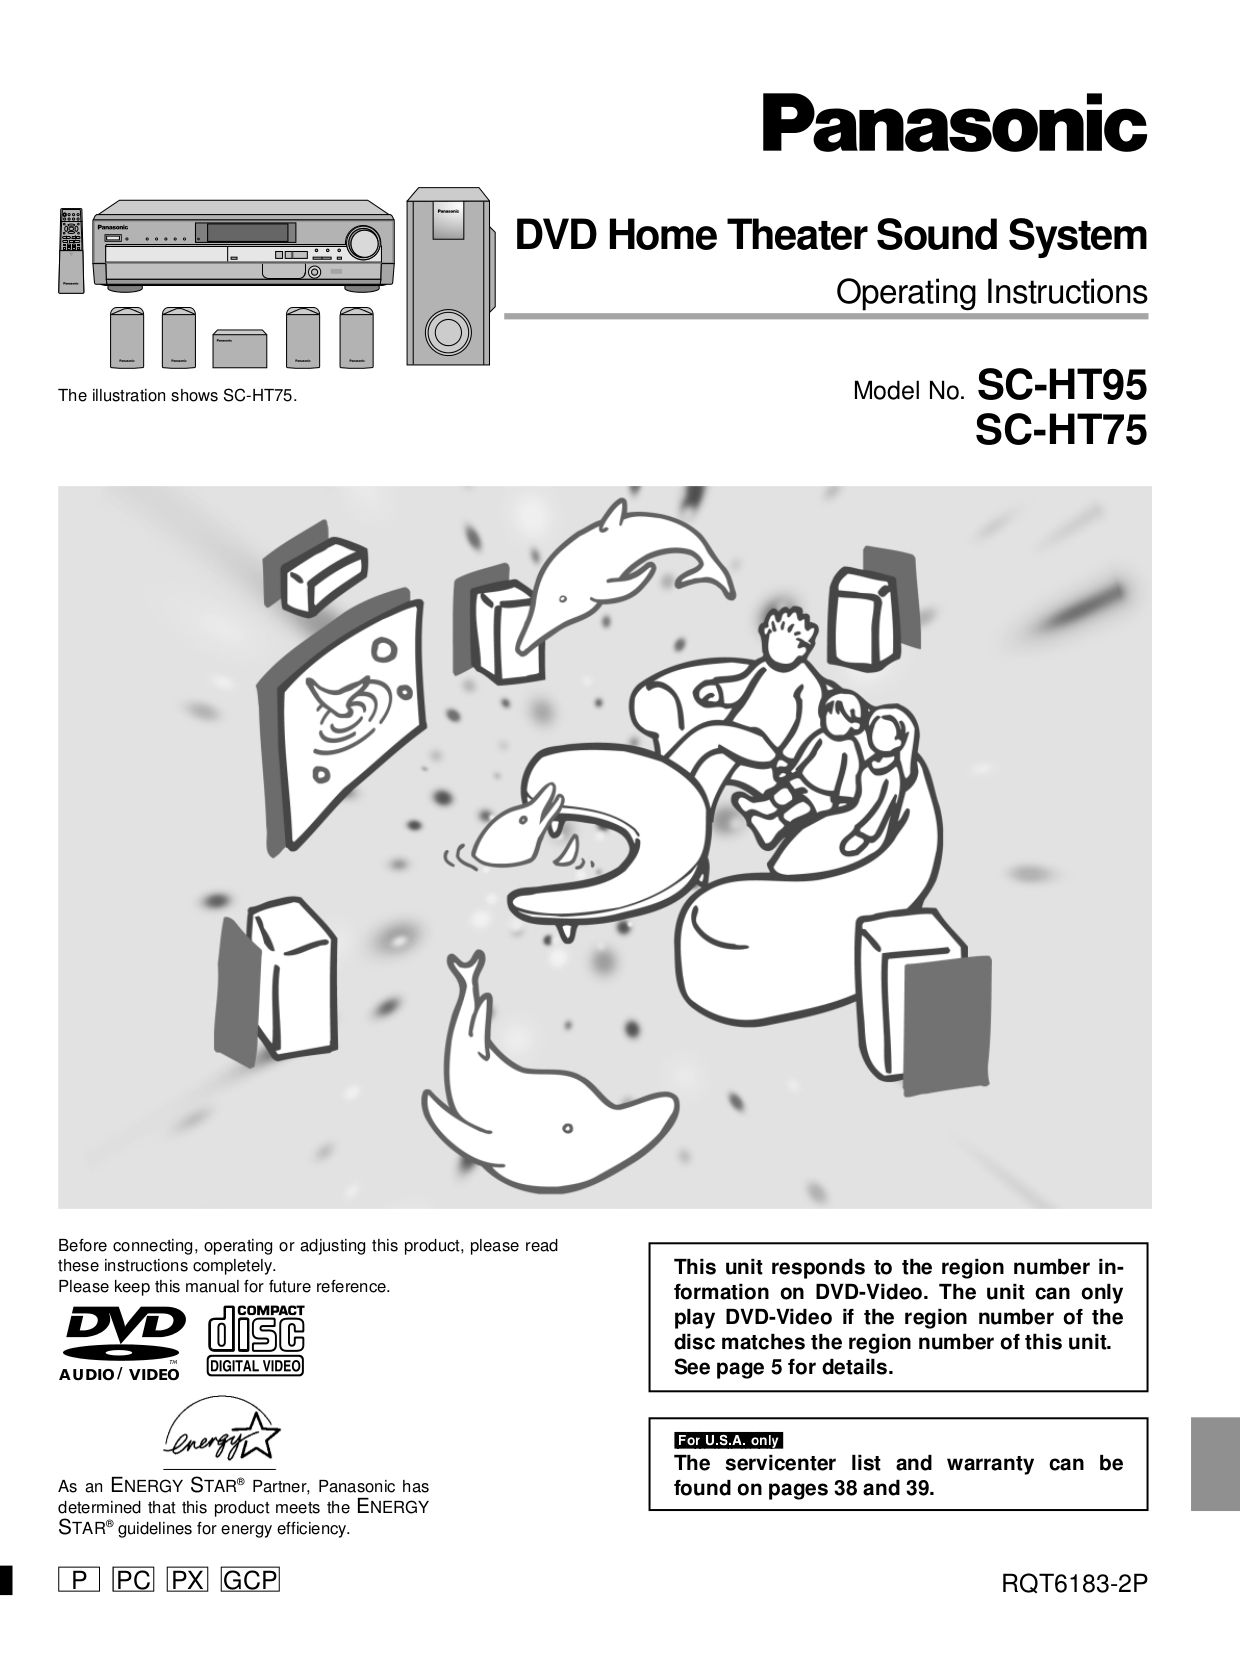 Panasonic manual pdf pdf for panasonic home theater sc ht95 manual fandeluxe Images